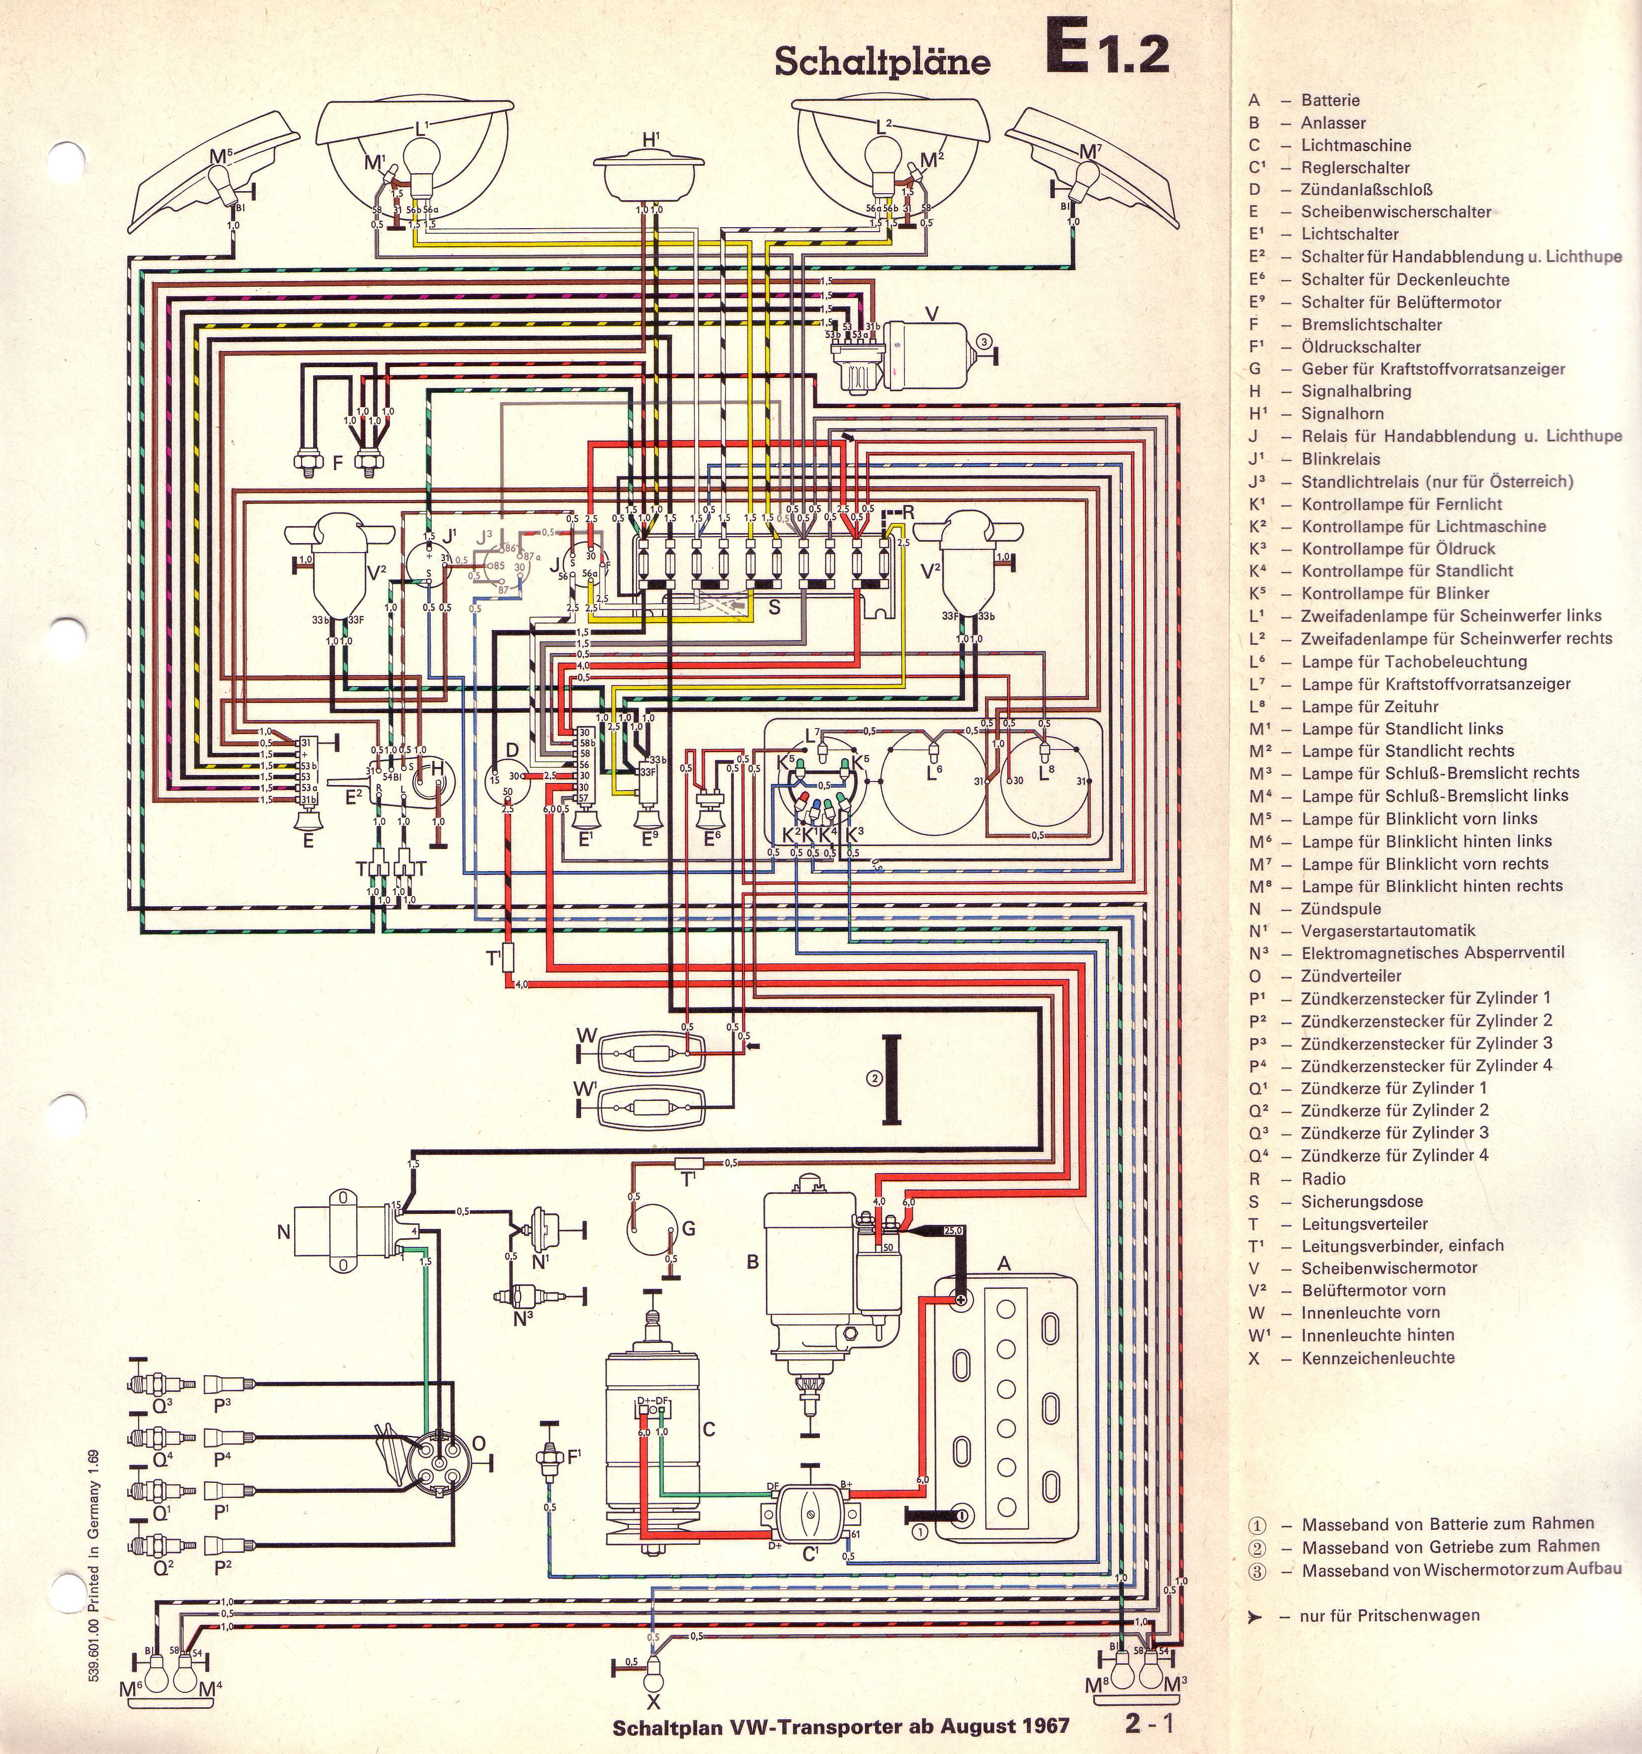 wiring diagram vw transporter bus vw t4 fuse box diagram vw wiring diagrams